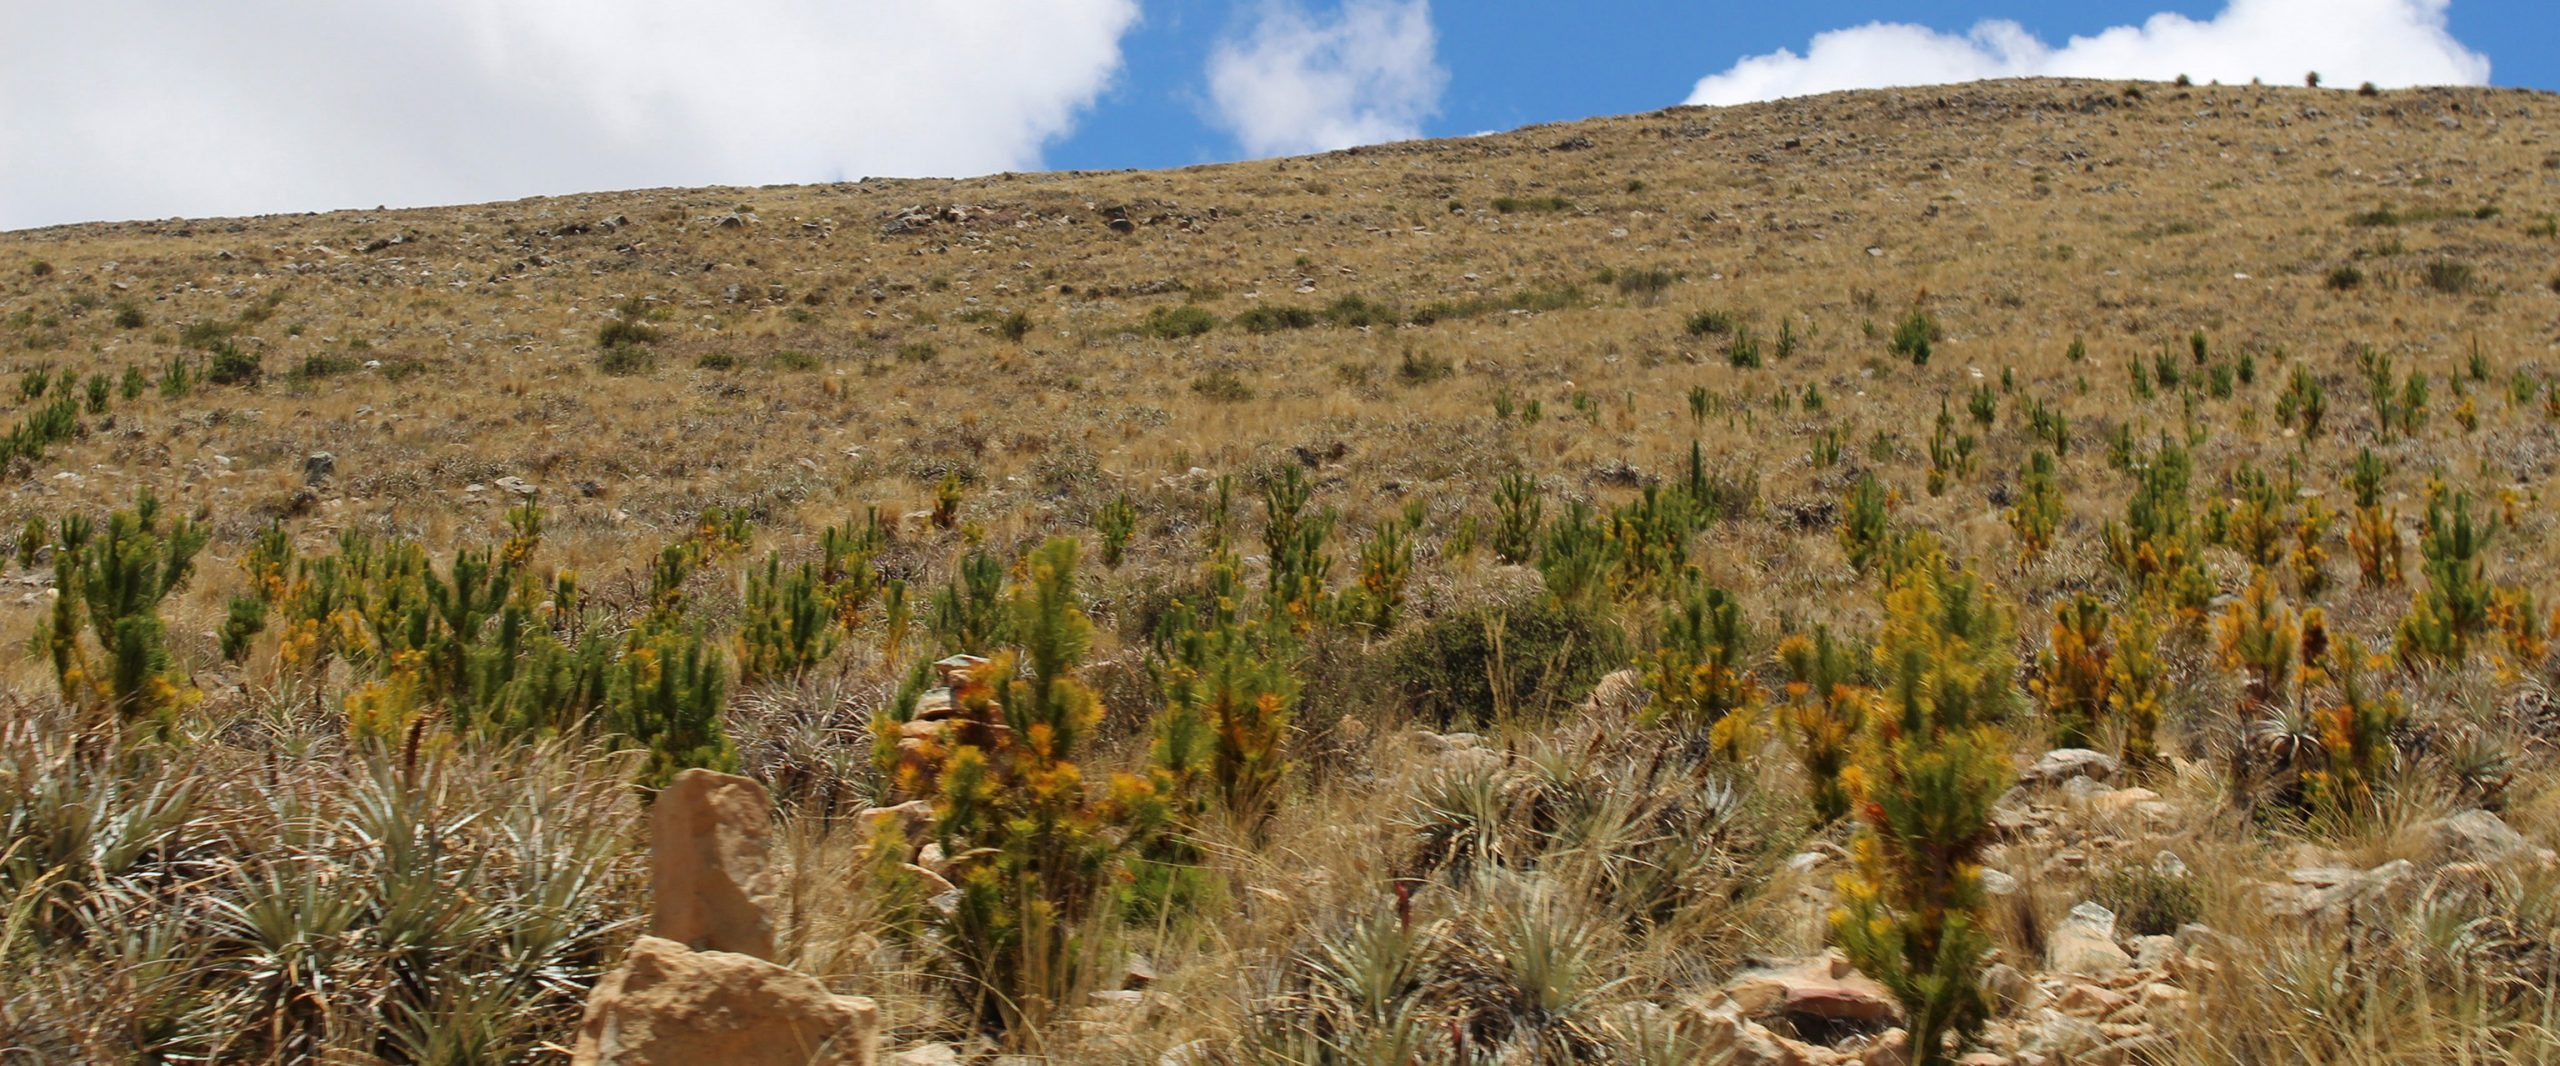 Newly planted trees sprout in Bolivia